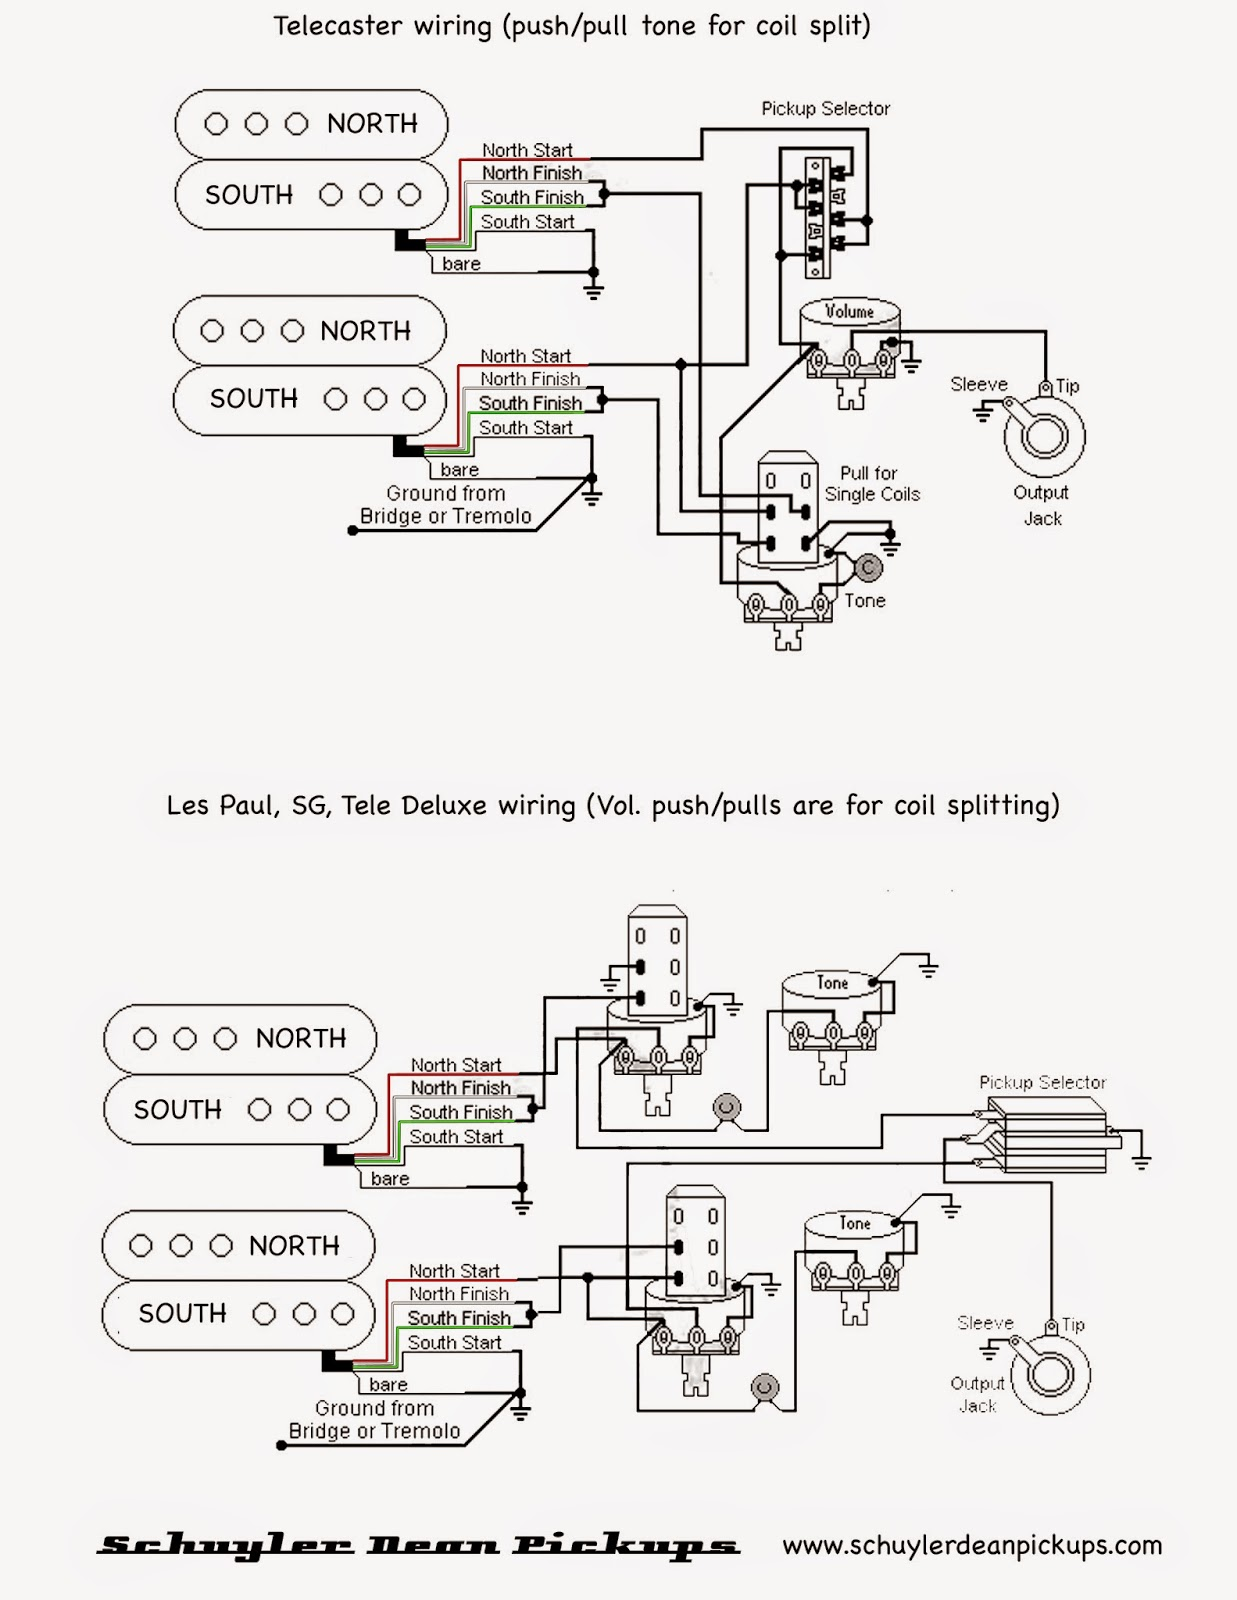 Wiring%2Bdiagram%2BTele LP single coil wiring diagram guitar wiring \u2022 free wiring diagrams iron gear wiring diagrams at soozxer.org